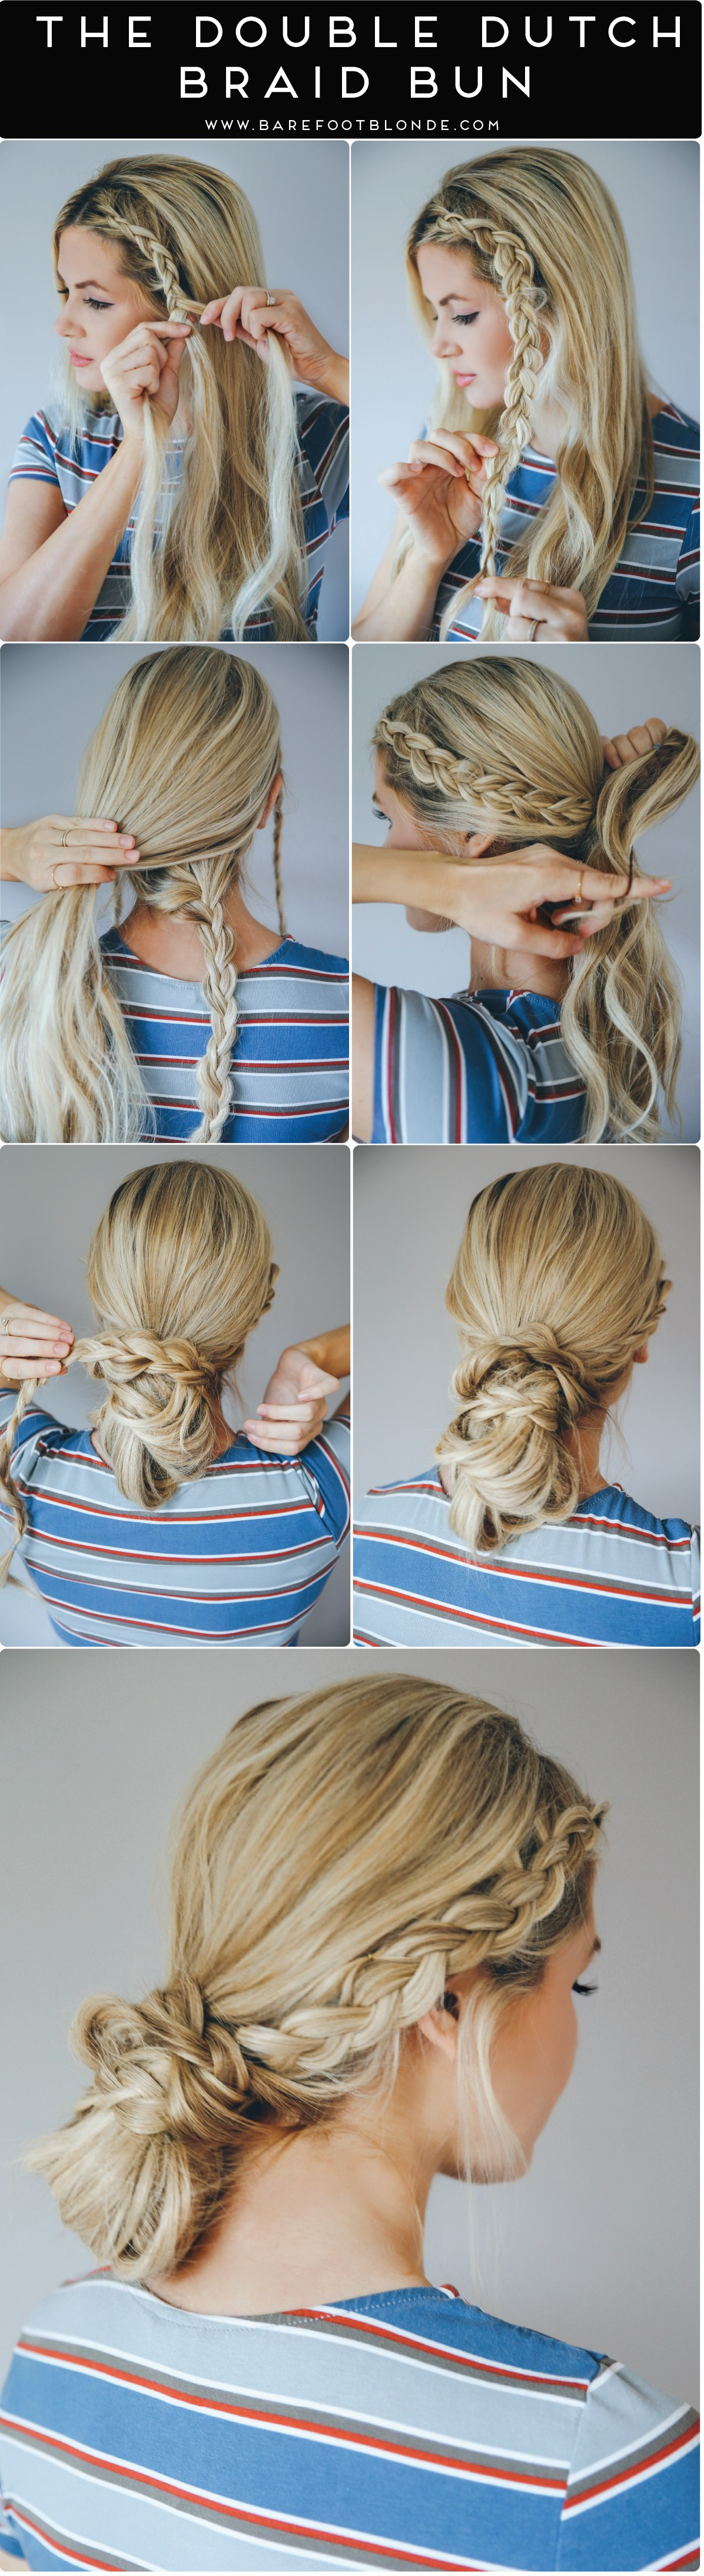 12 Hairstyles That Are Perfect For Your Next Workout Simplemost